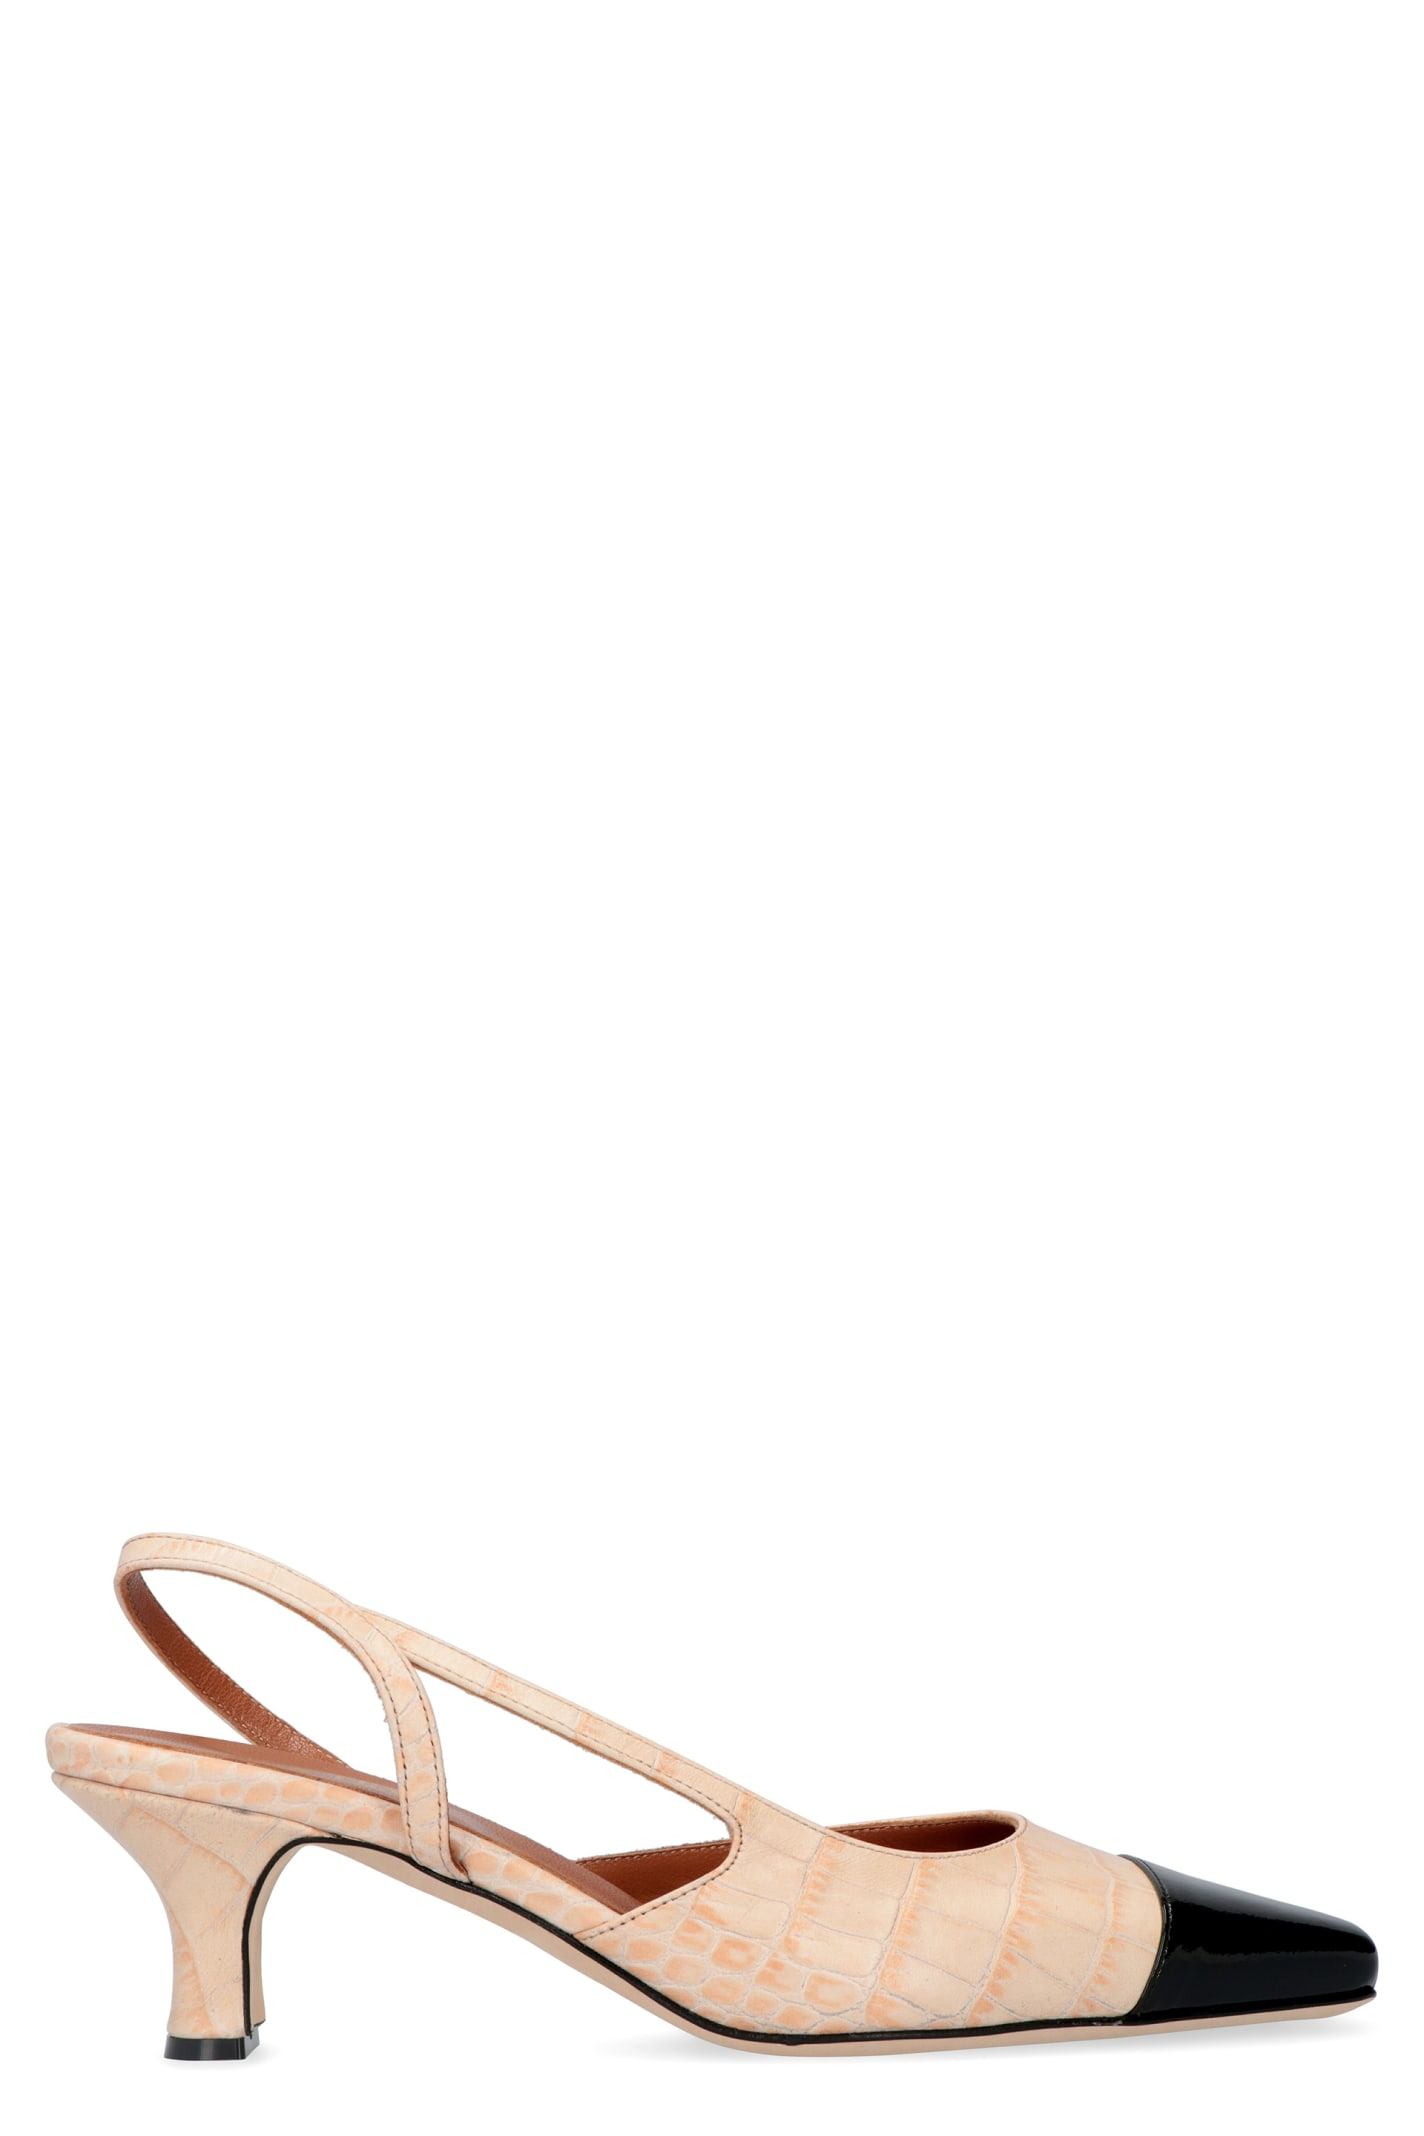 Paris Texas Leather Slingback Pumps